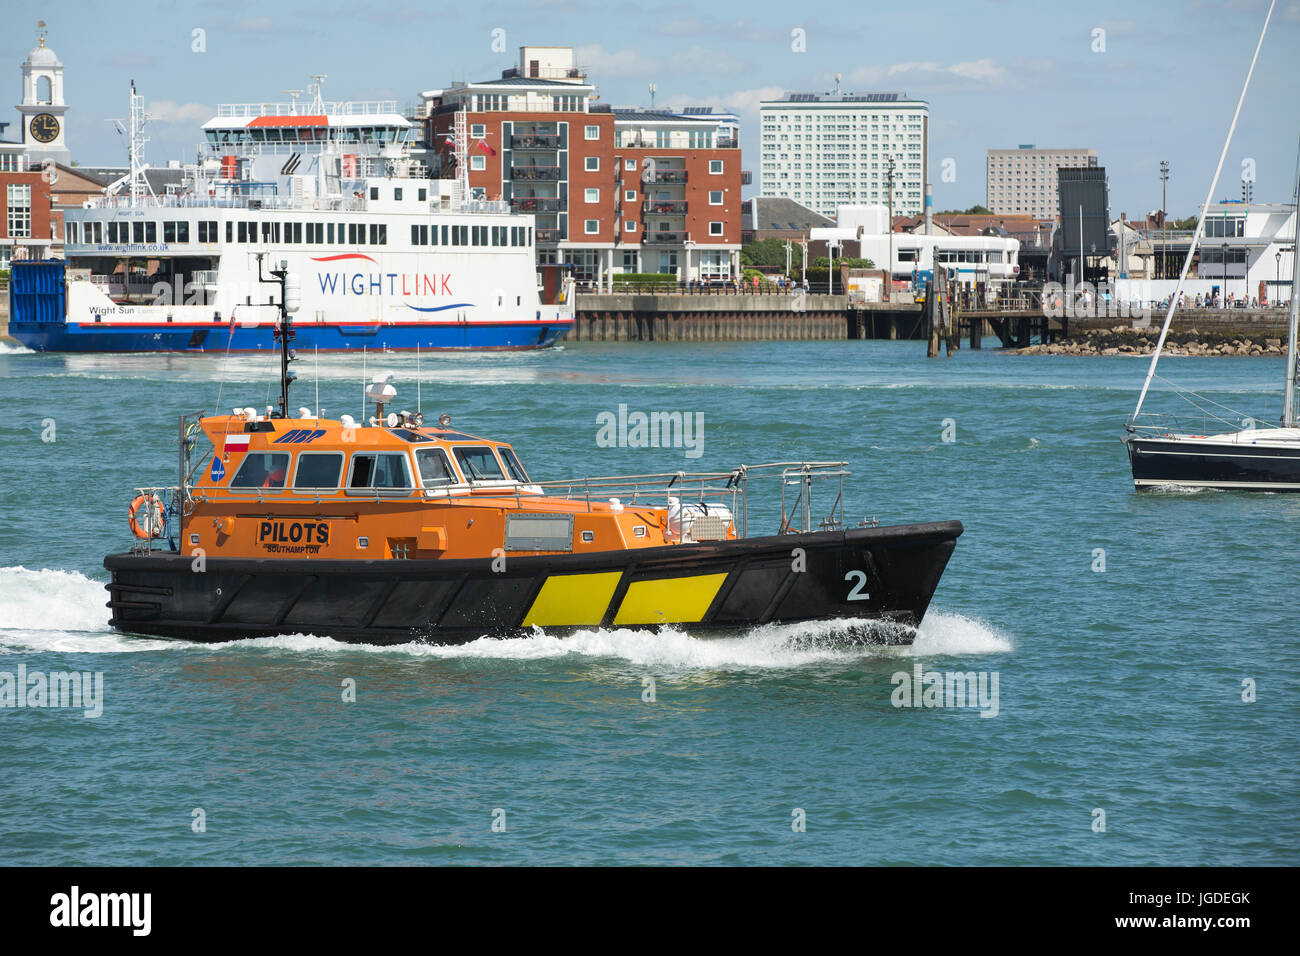 Orange and black Associated British Ports pilot boat in action in Portsmouth harbour. Nautical scene with the IOW - Stock Image